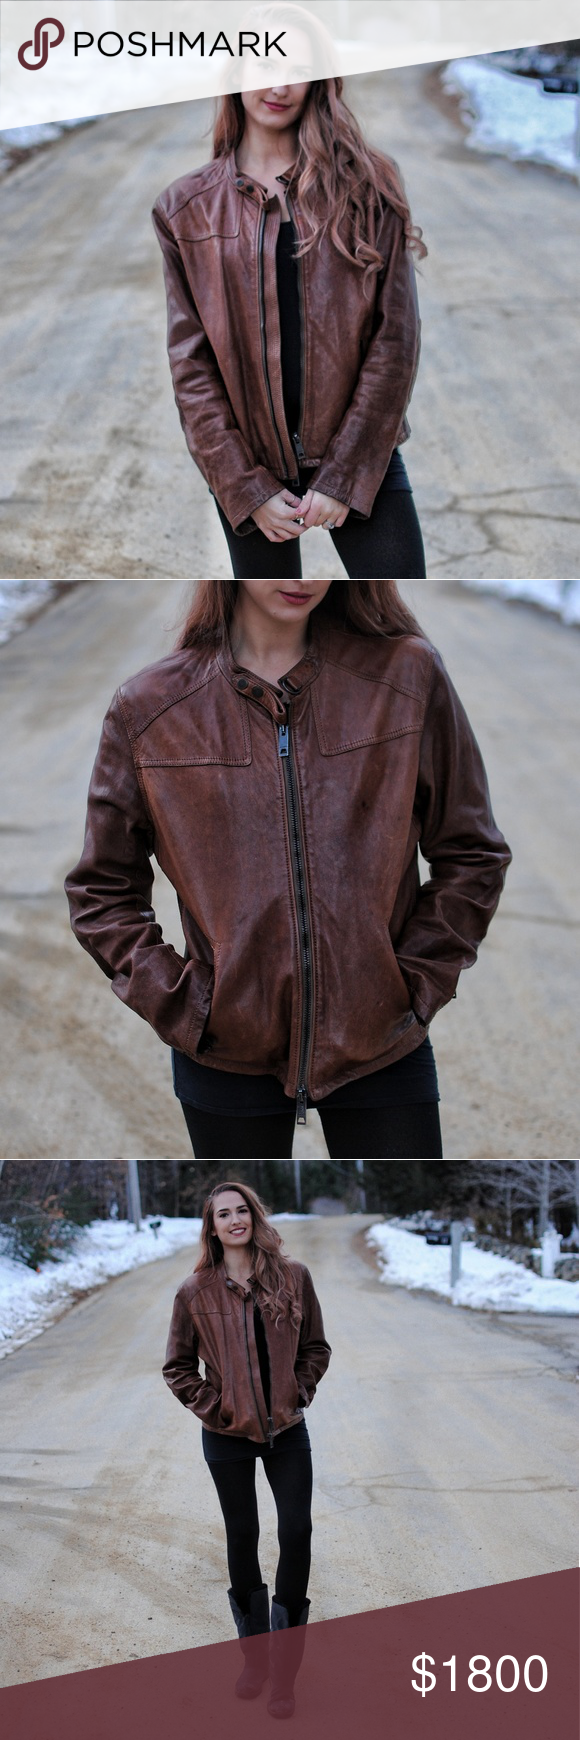 Authentic Burberry Lambskin Leather Moto Jacket So the